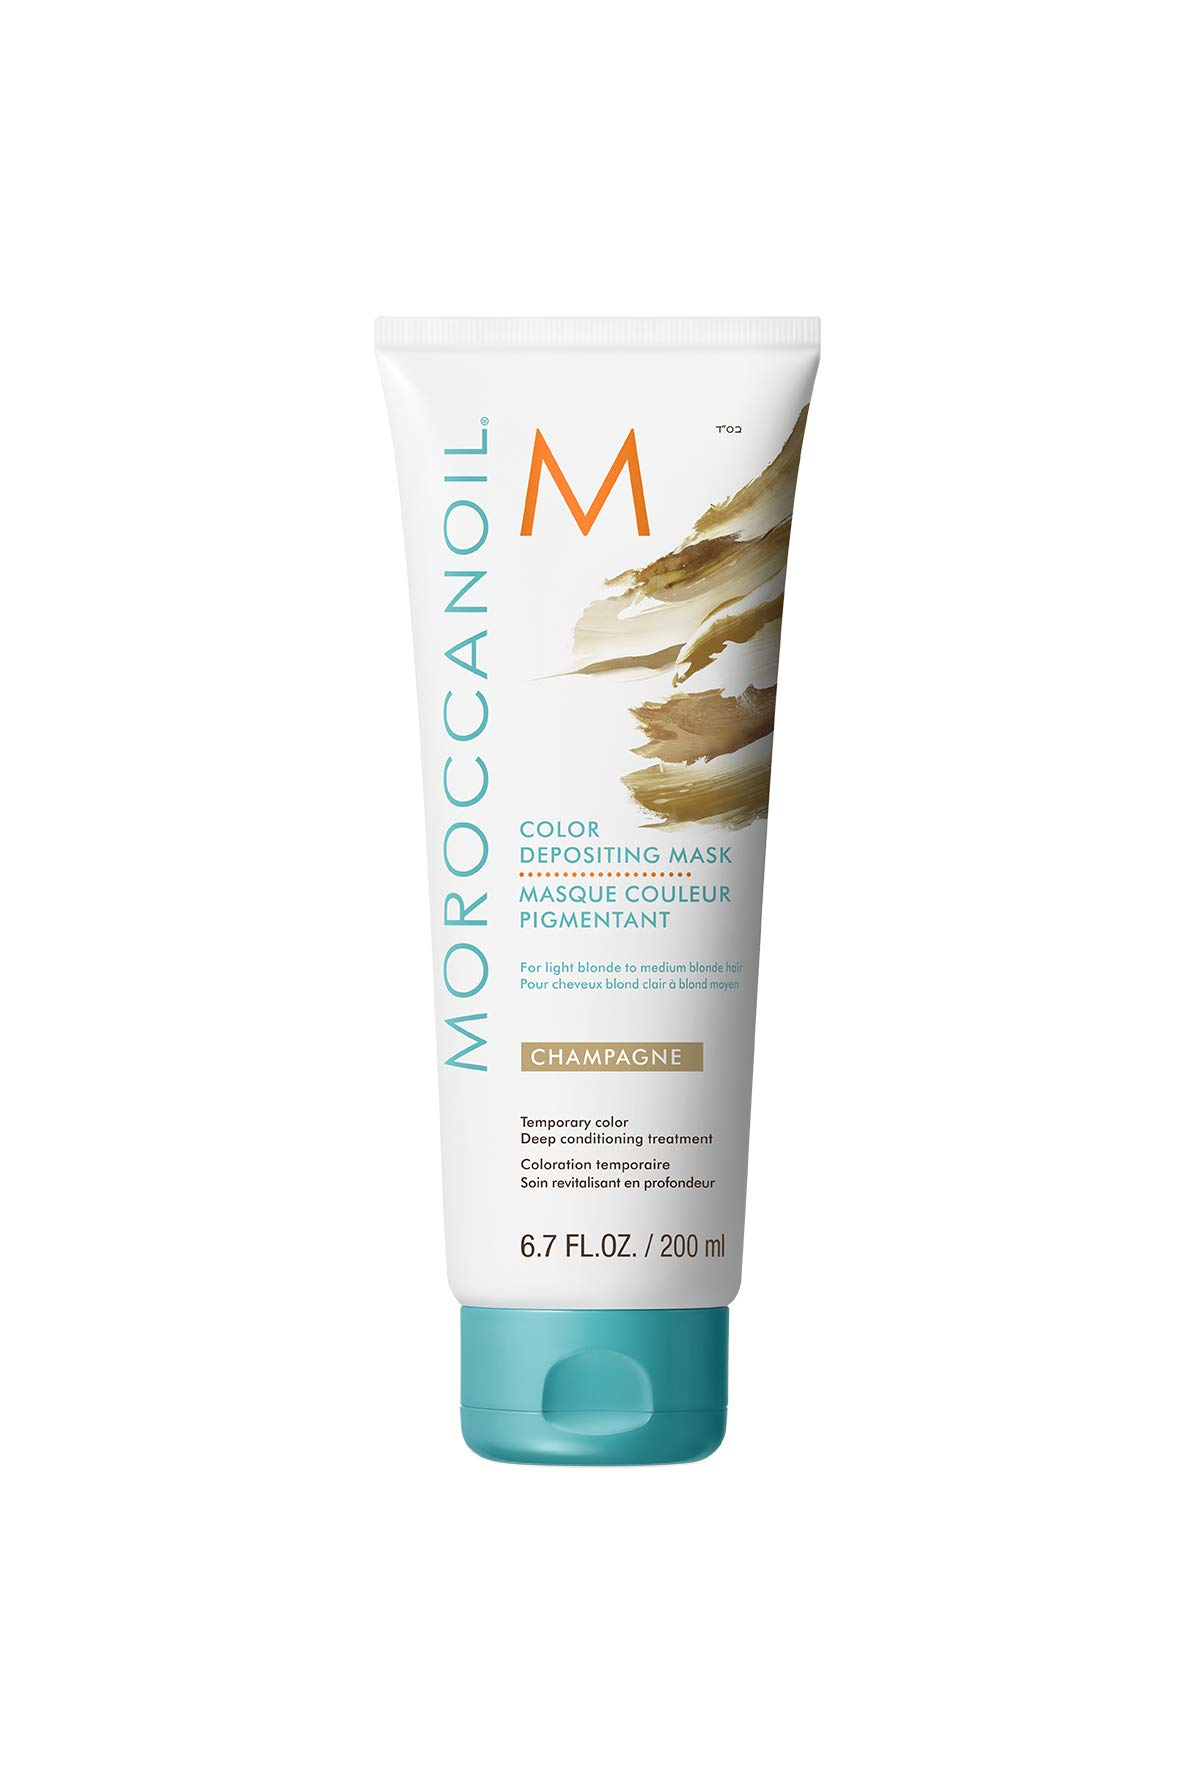 Moroccanoil Color Depositing Mask, Champagne by MOROCCANOIL